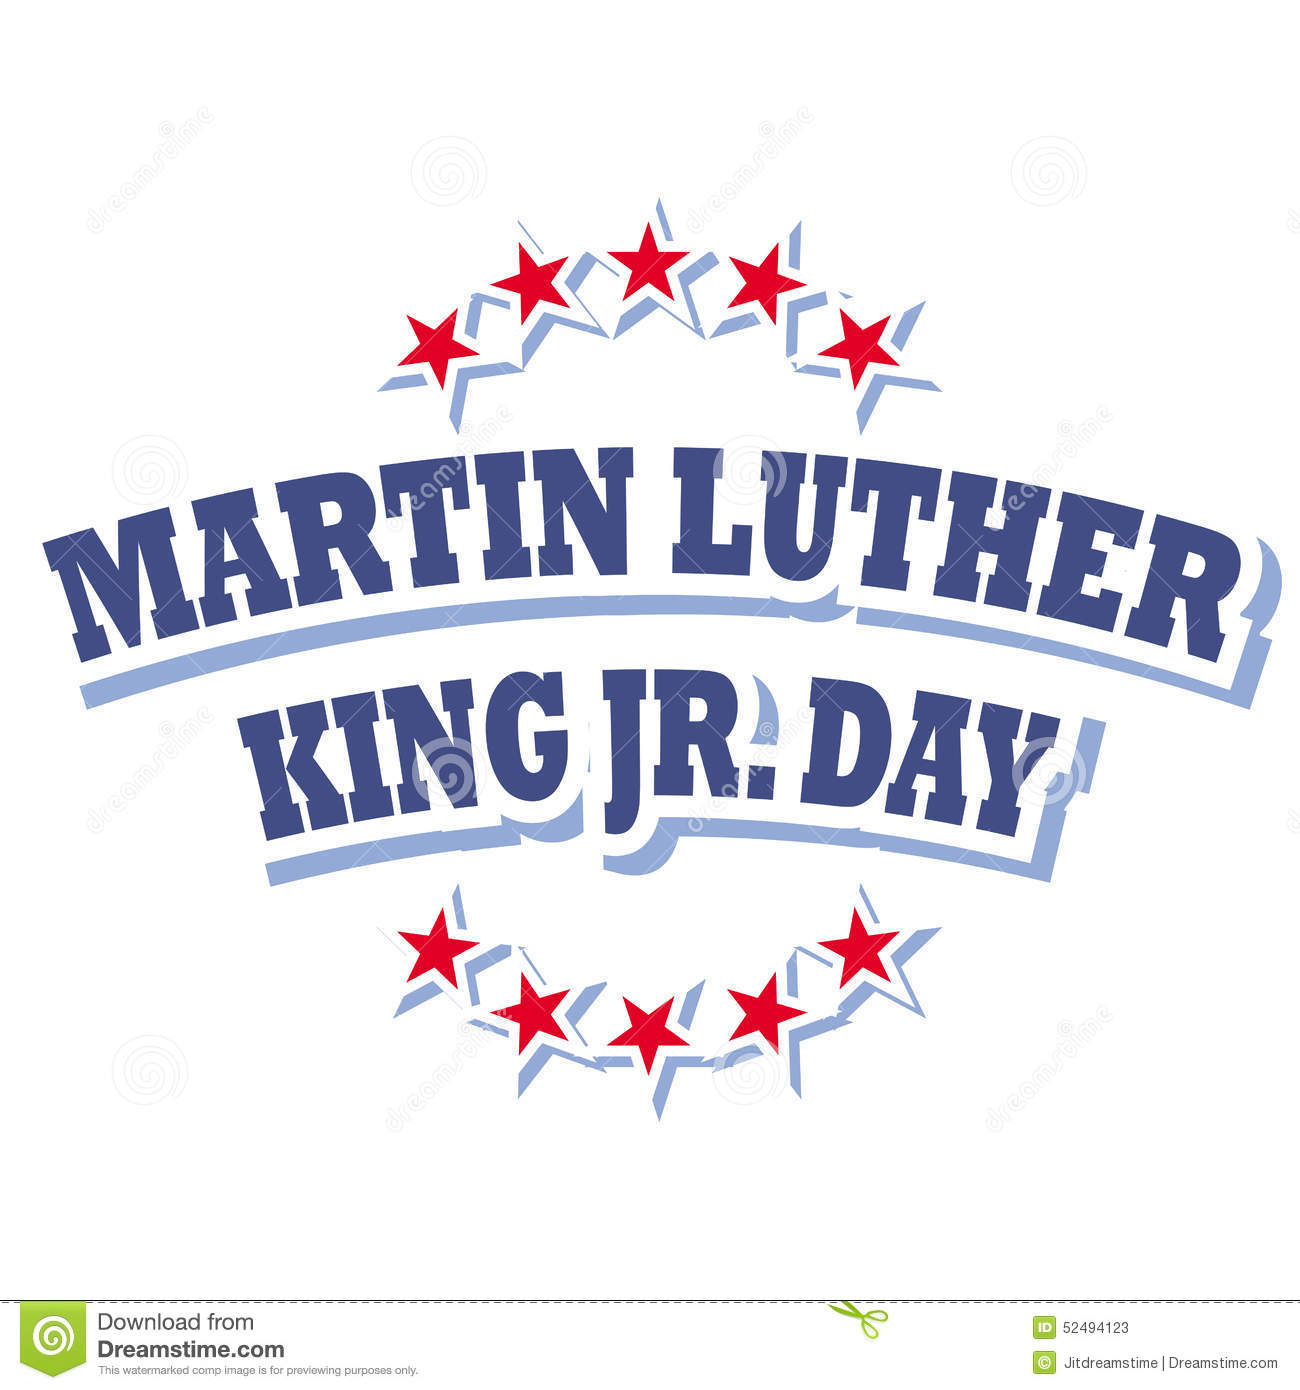 Martin Luther King Jr Day Logo Stock Vector Illustration Of